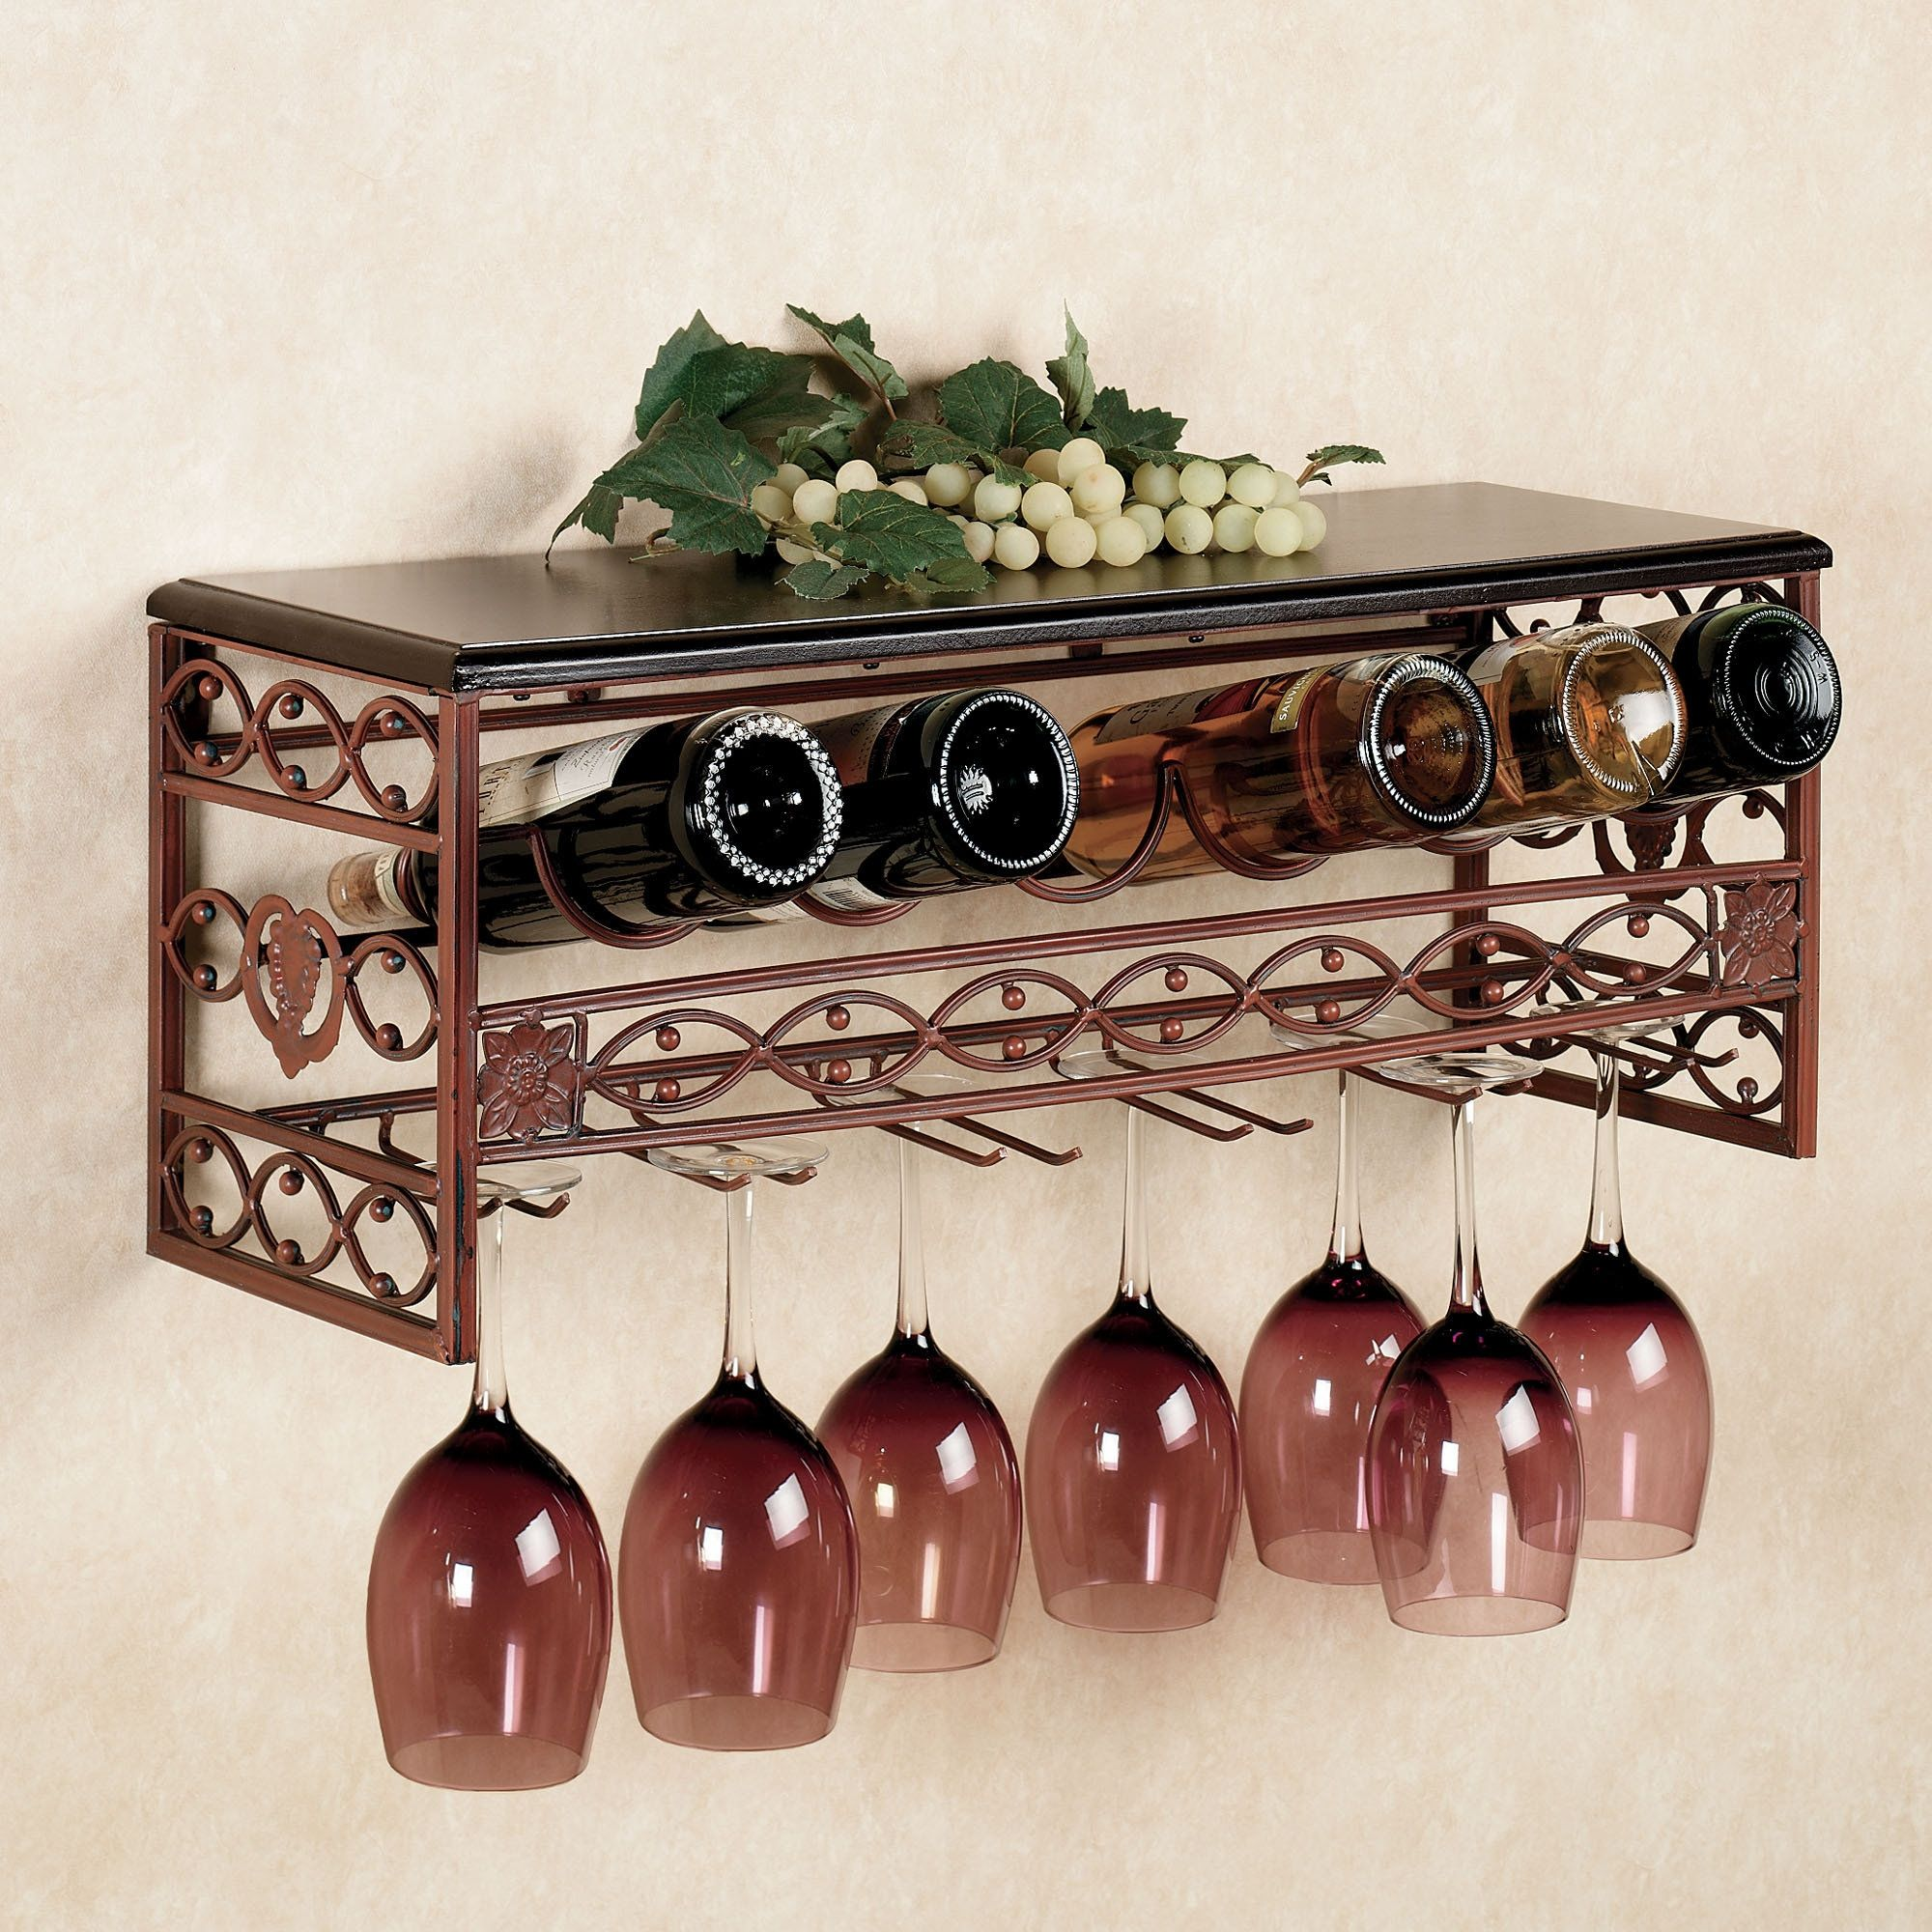 wine racks home ideas furniture rack cool storage homemade photo walls wall tierra gallery creative uniquely